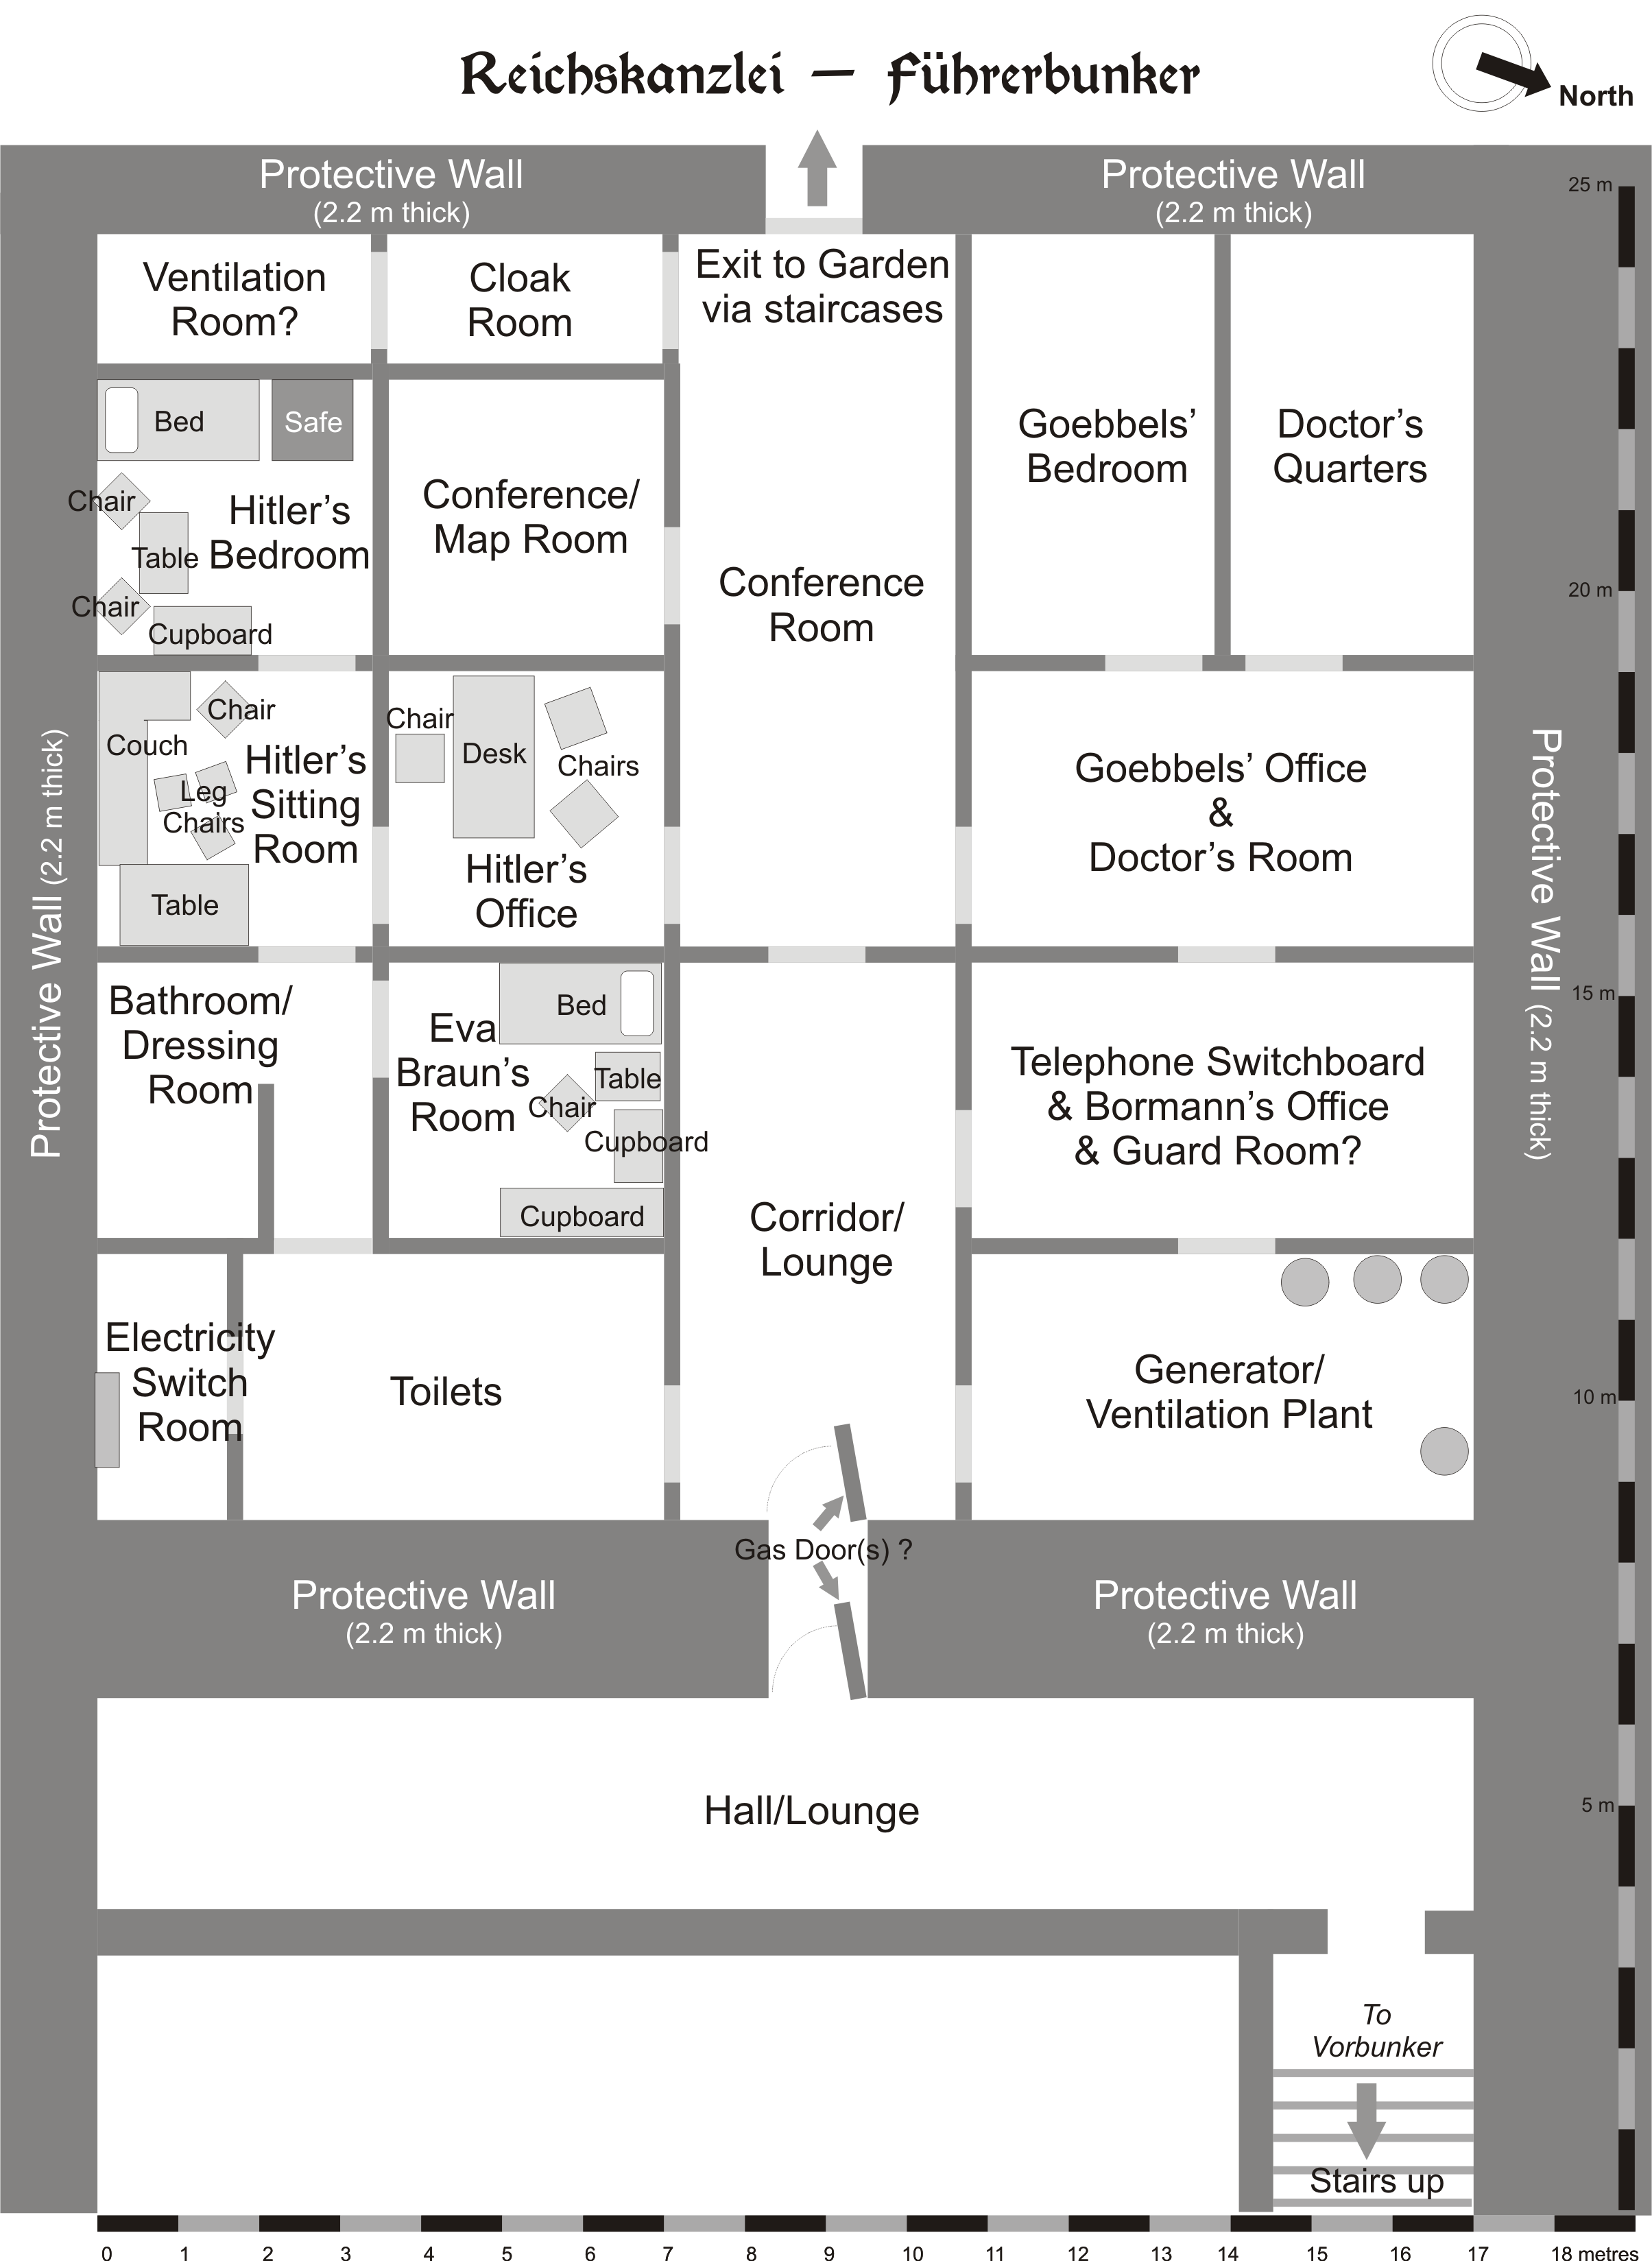 Plan of the lower section of the Führerbunker.